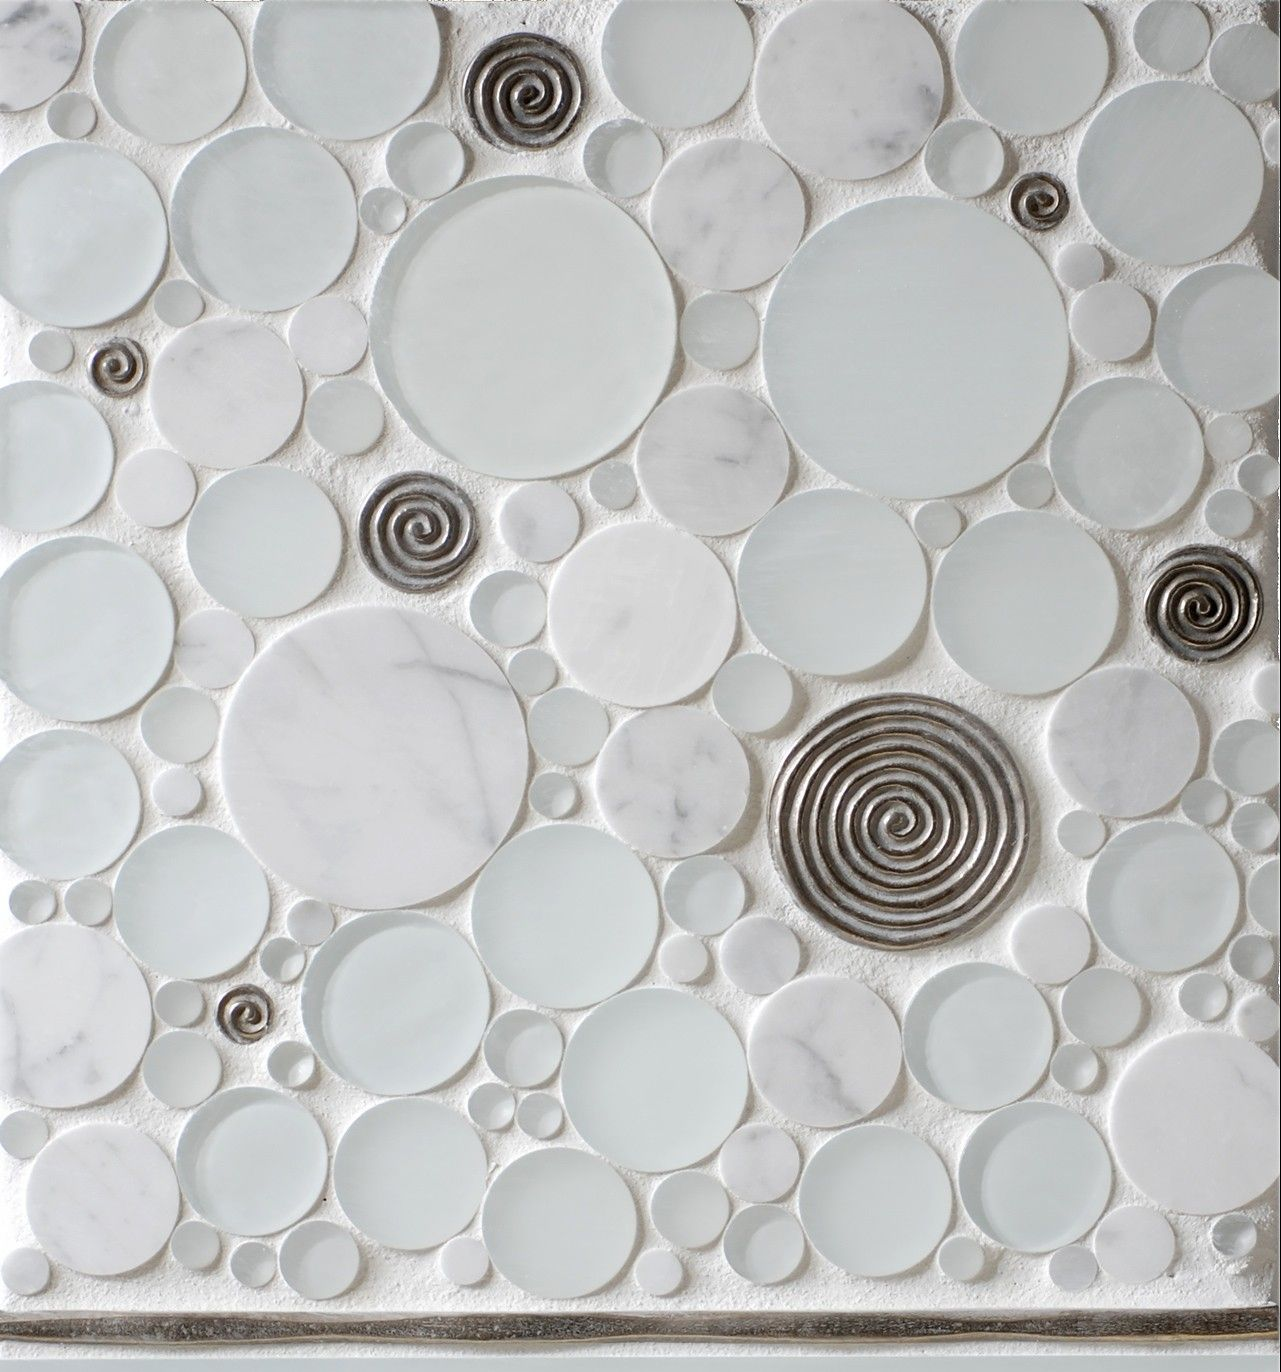 Metal accent tiles and liners for bathroom, kitchen, wall, floor ...